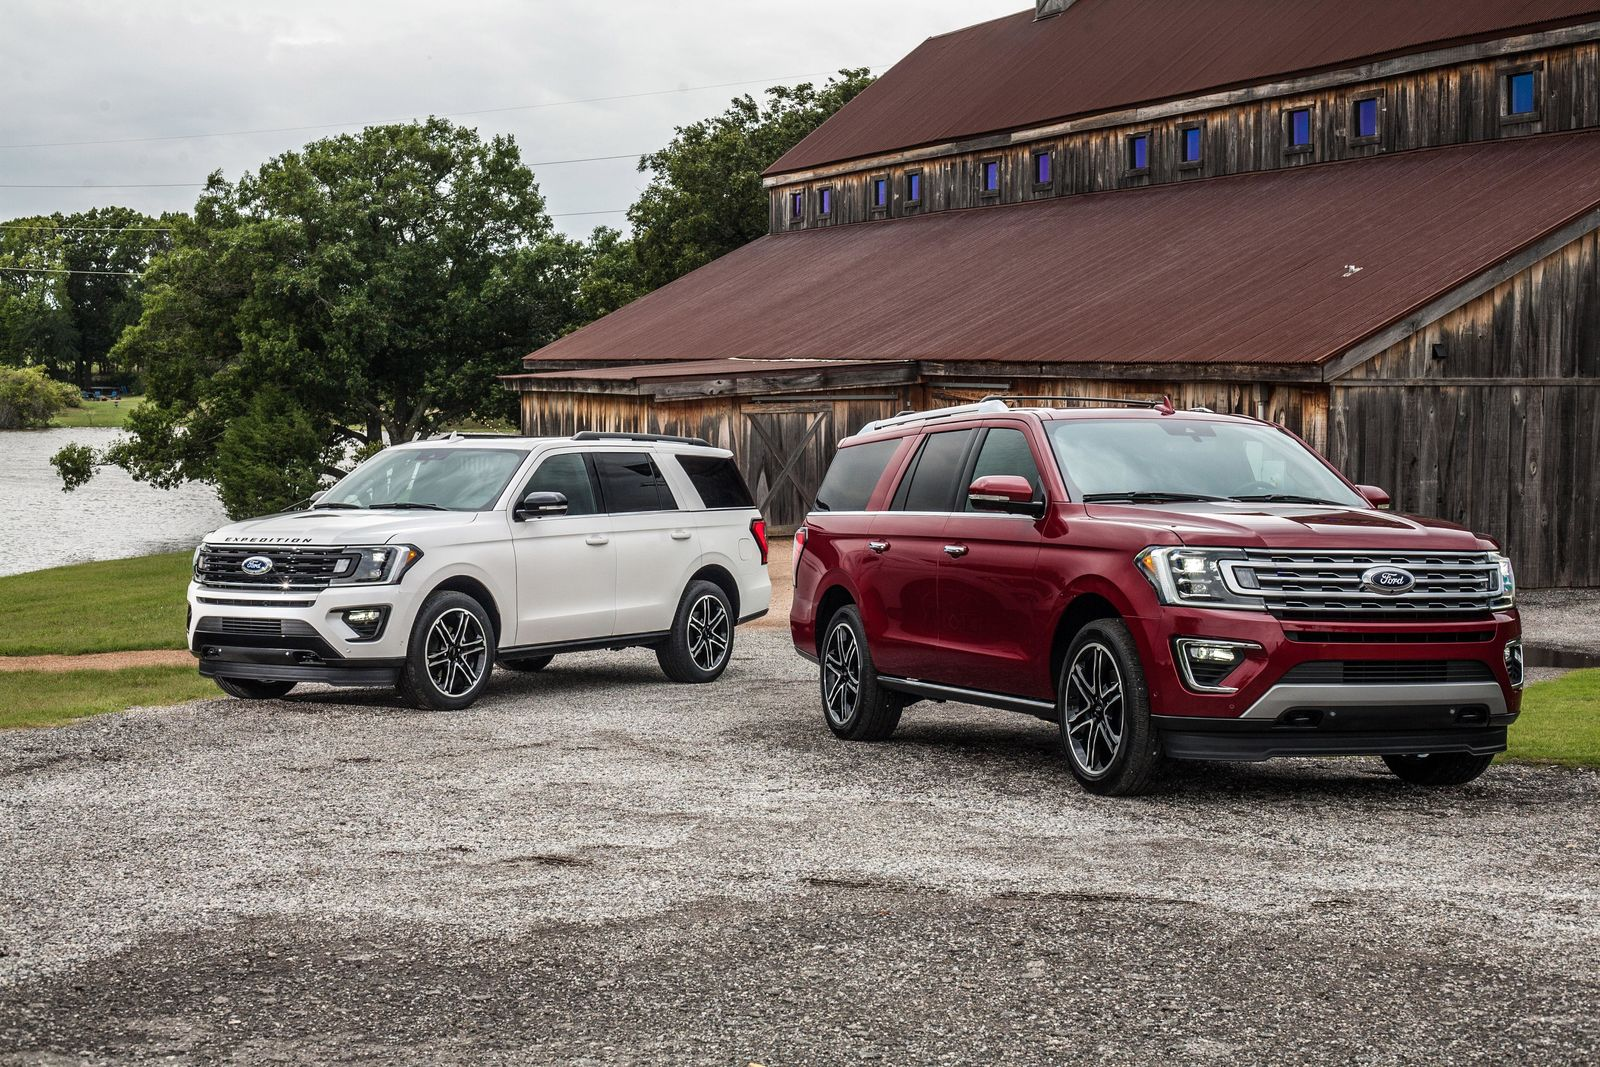 2019 Ford Expedition Texas and Stealth Editions (Photo: Ford)